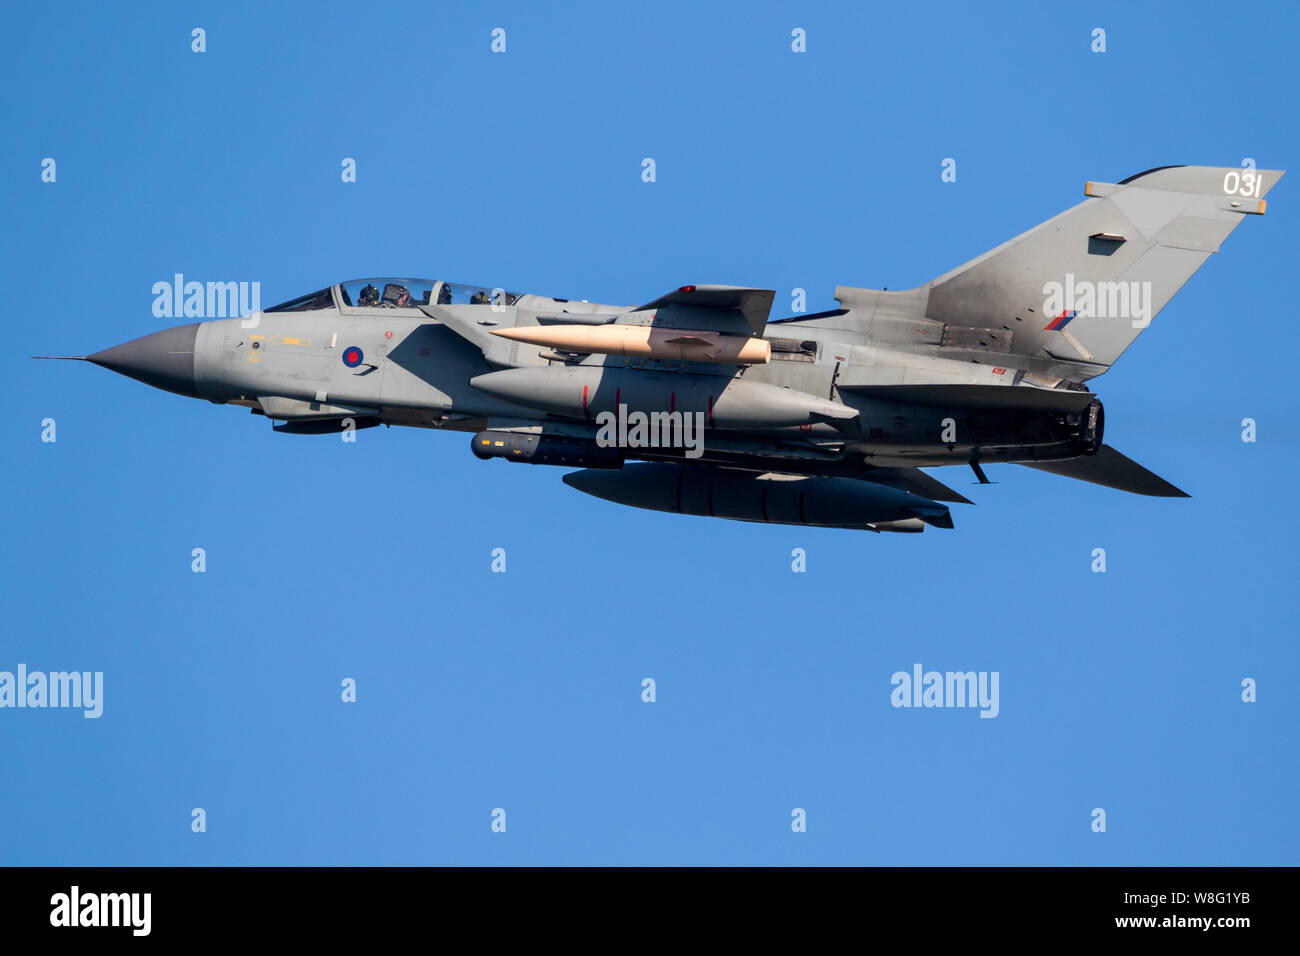 LEEUWARDEN, THE NETHERLANDS - MAR 28, 2017: British Royal Air Force Tornado GR-4 bomber jet aircraft in flight during NATO exercise Frisian Flag. Stock Photo